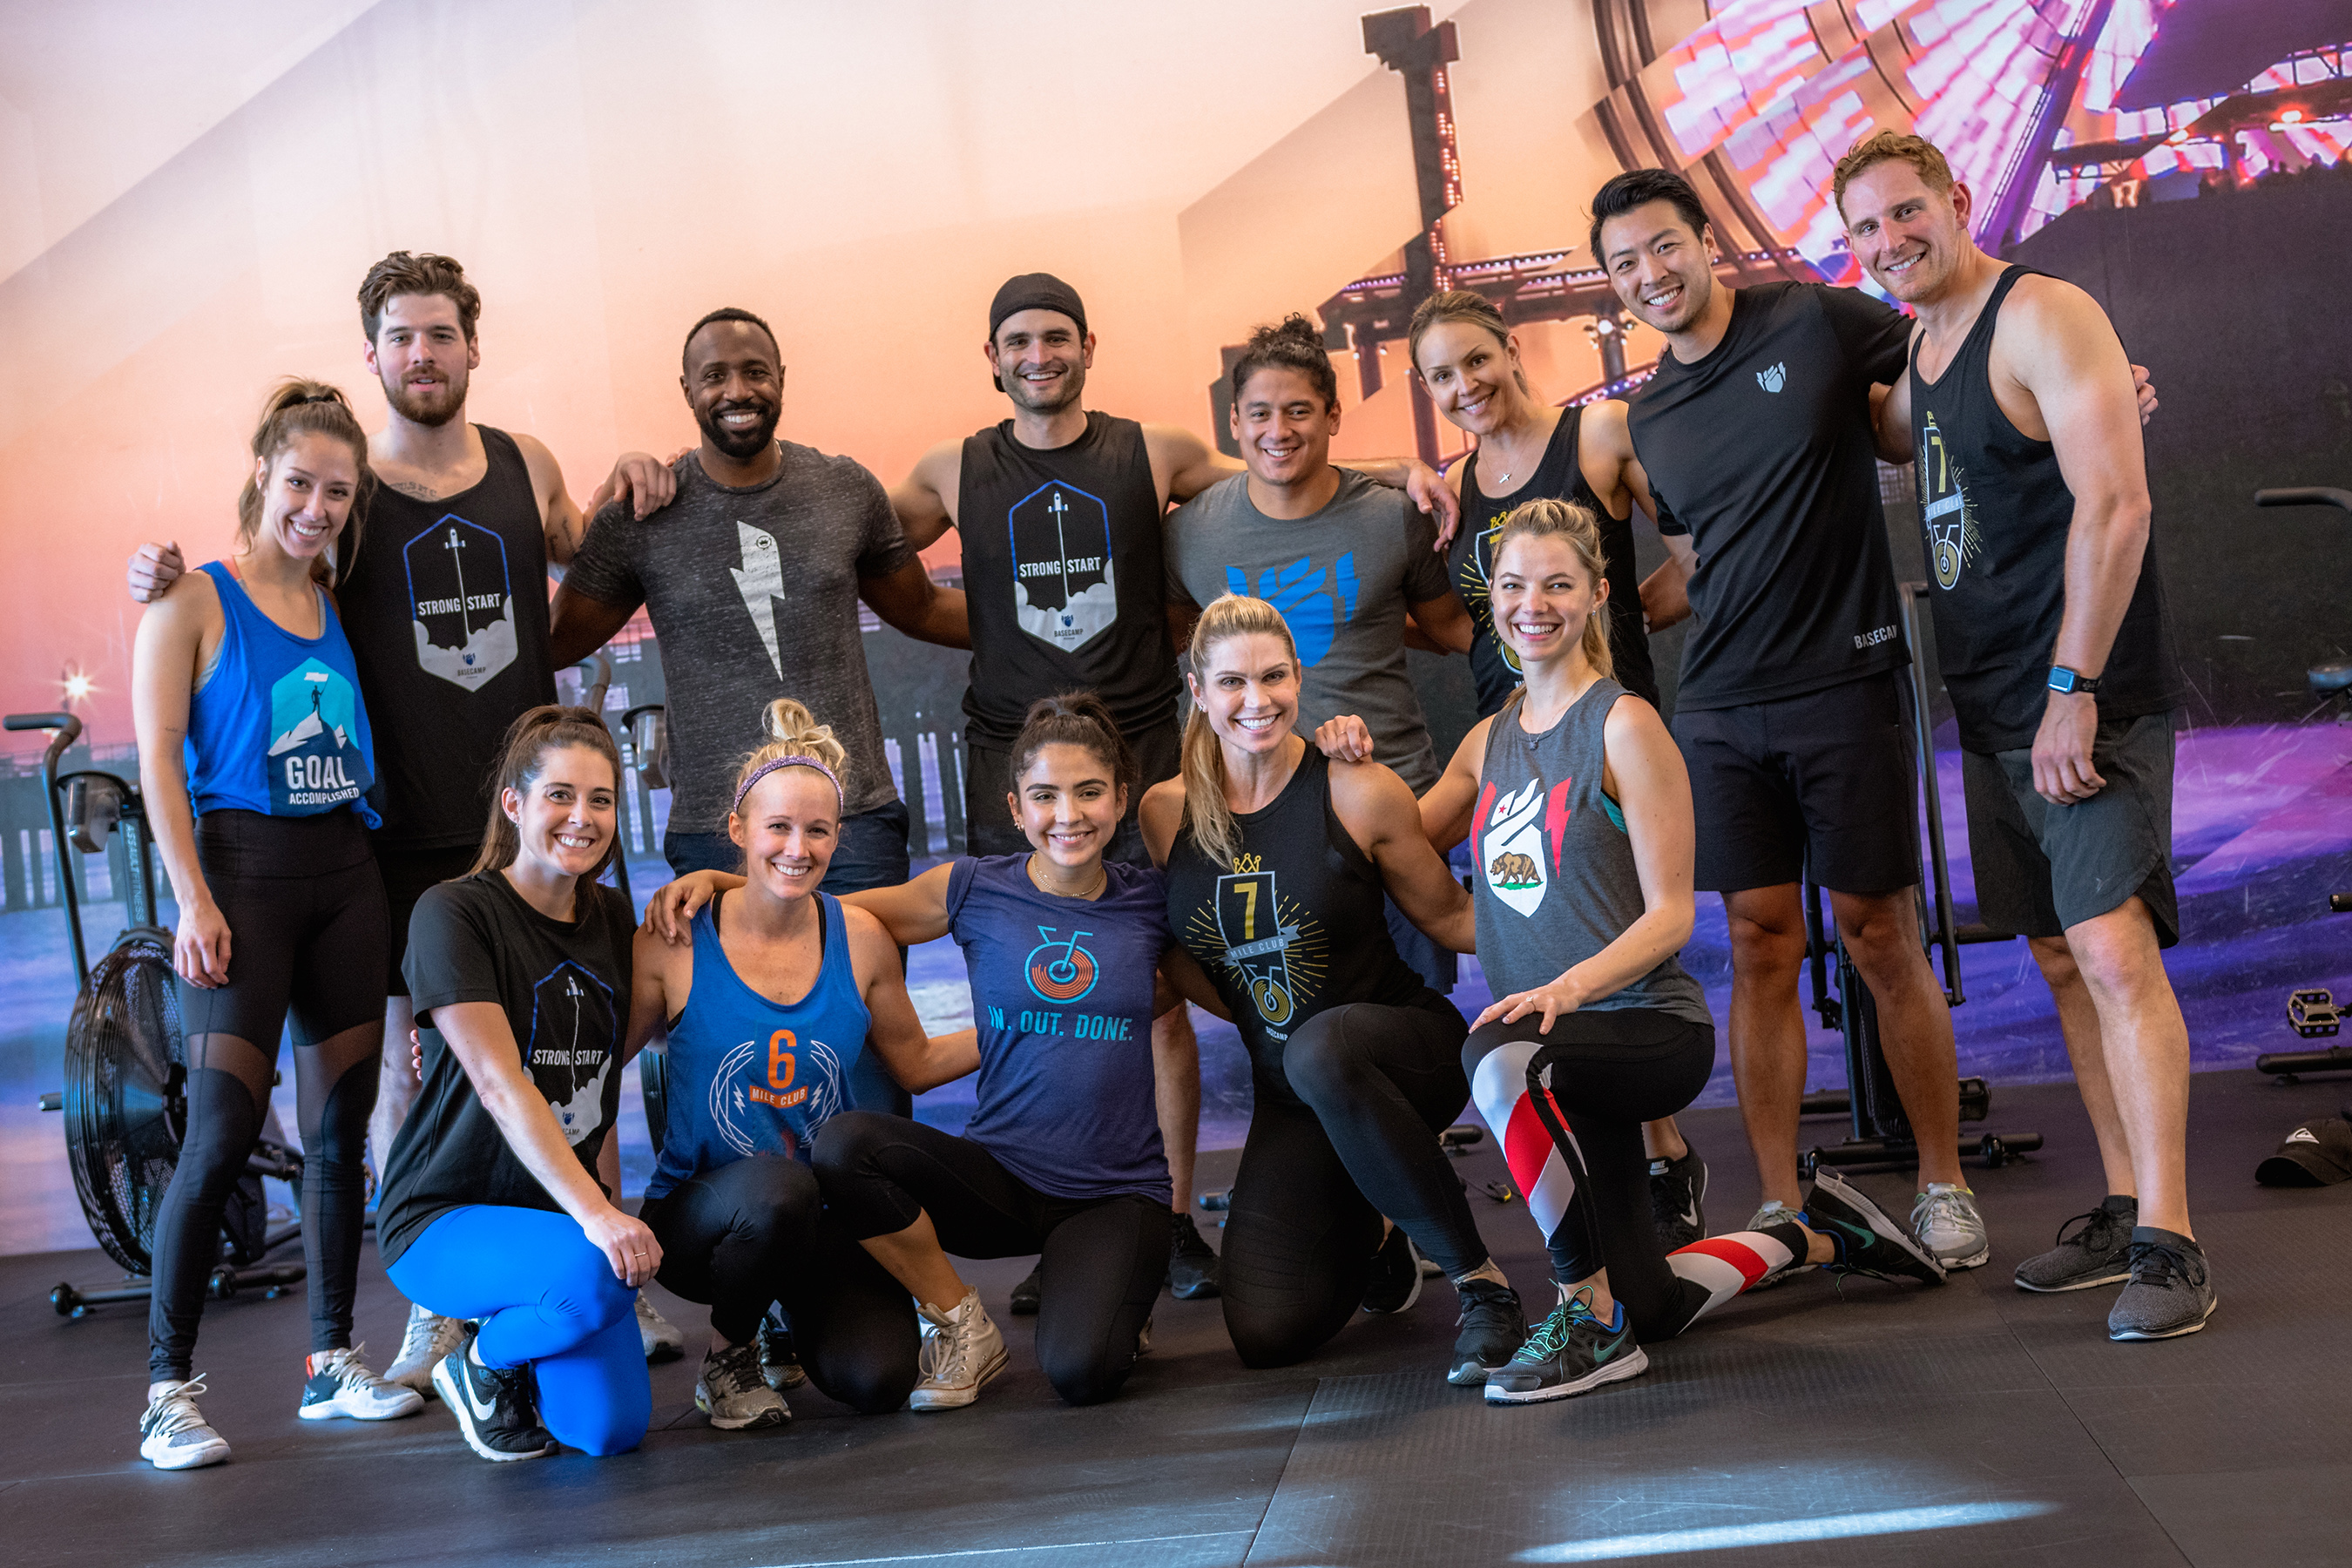 The new Basecamp Fitness app allows members to stay connected with friends and other members in real-time on one device.